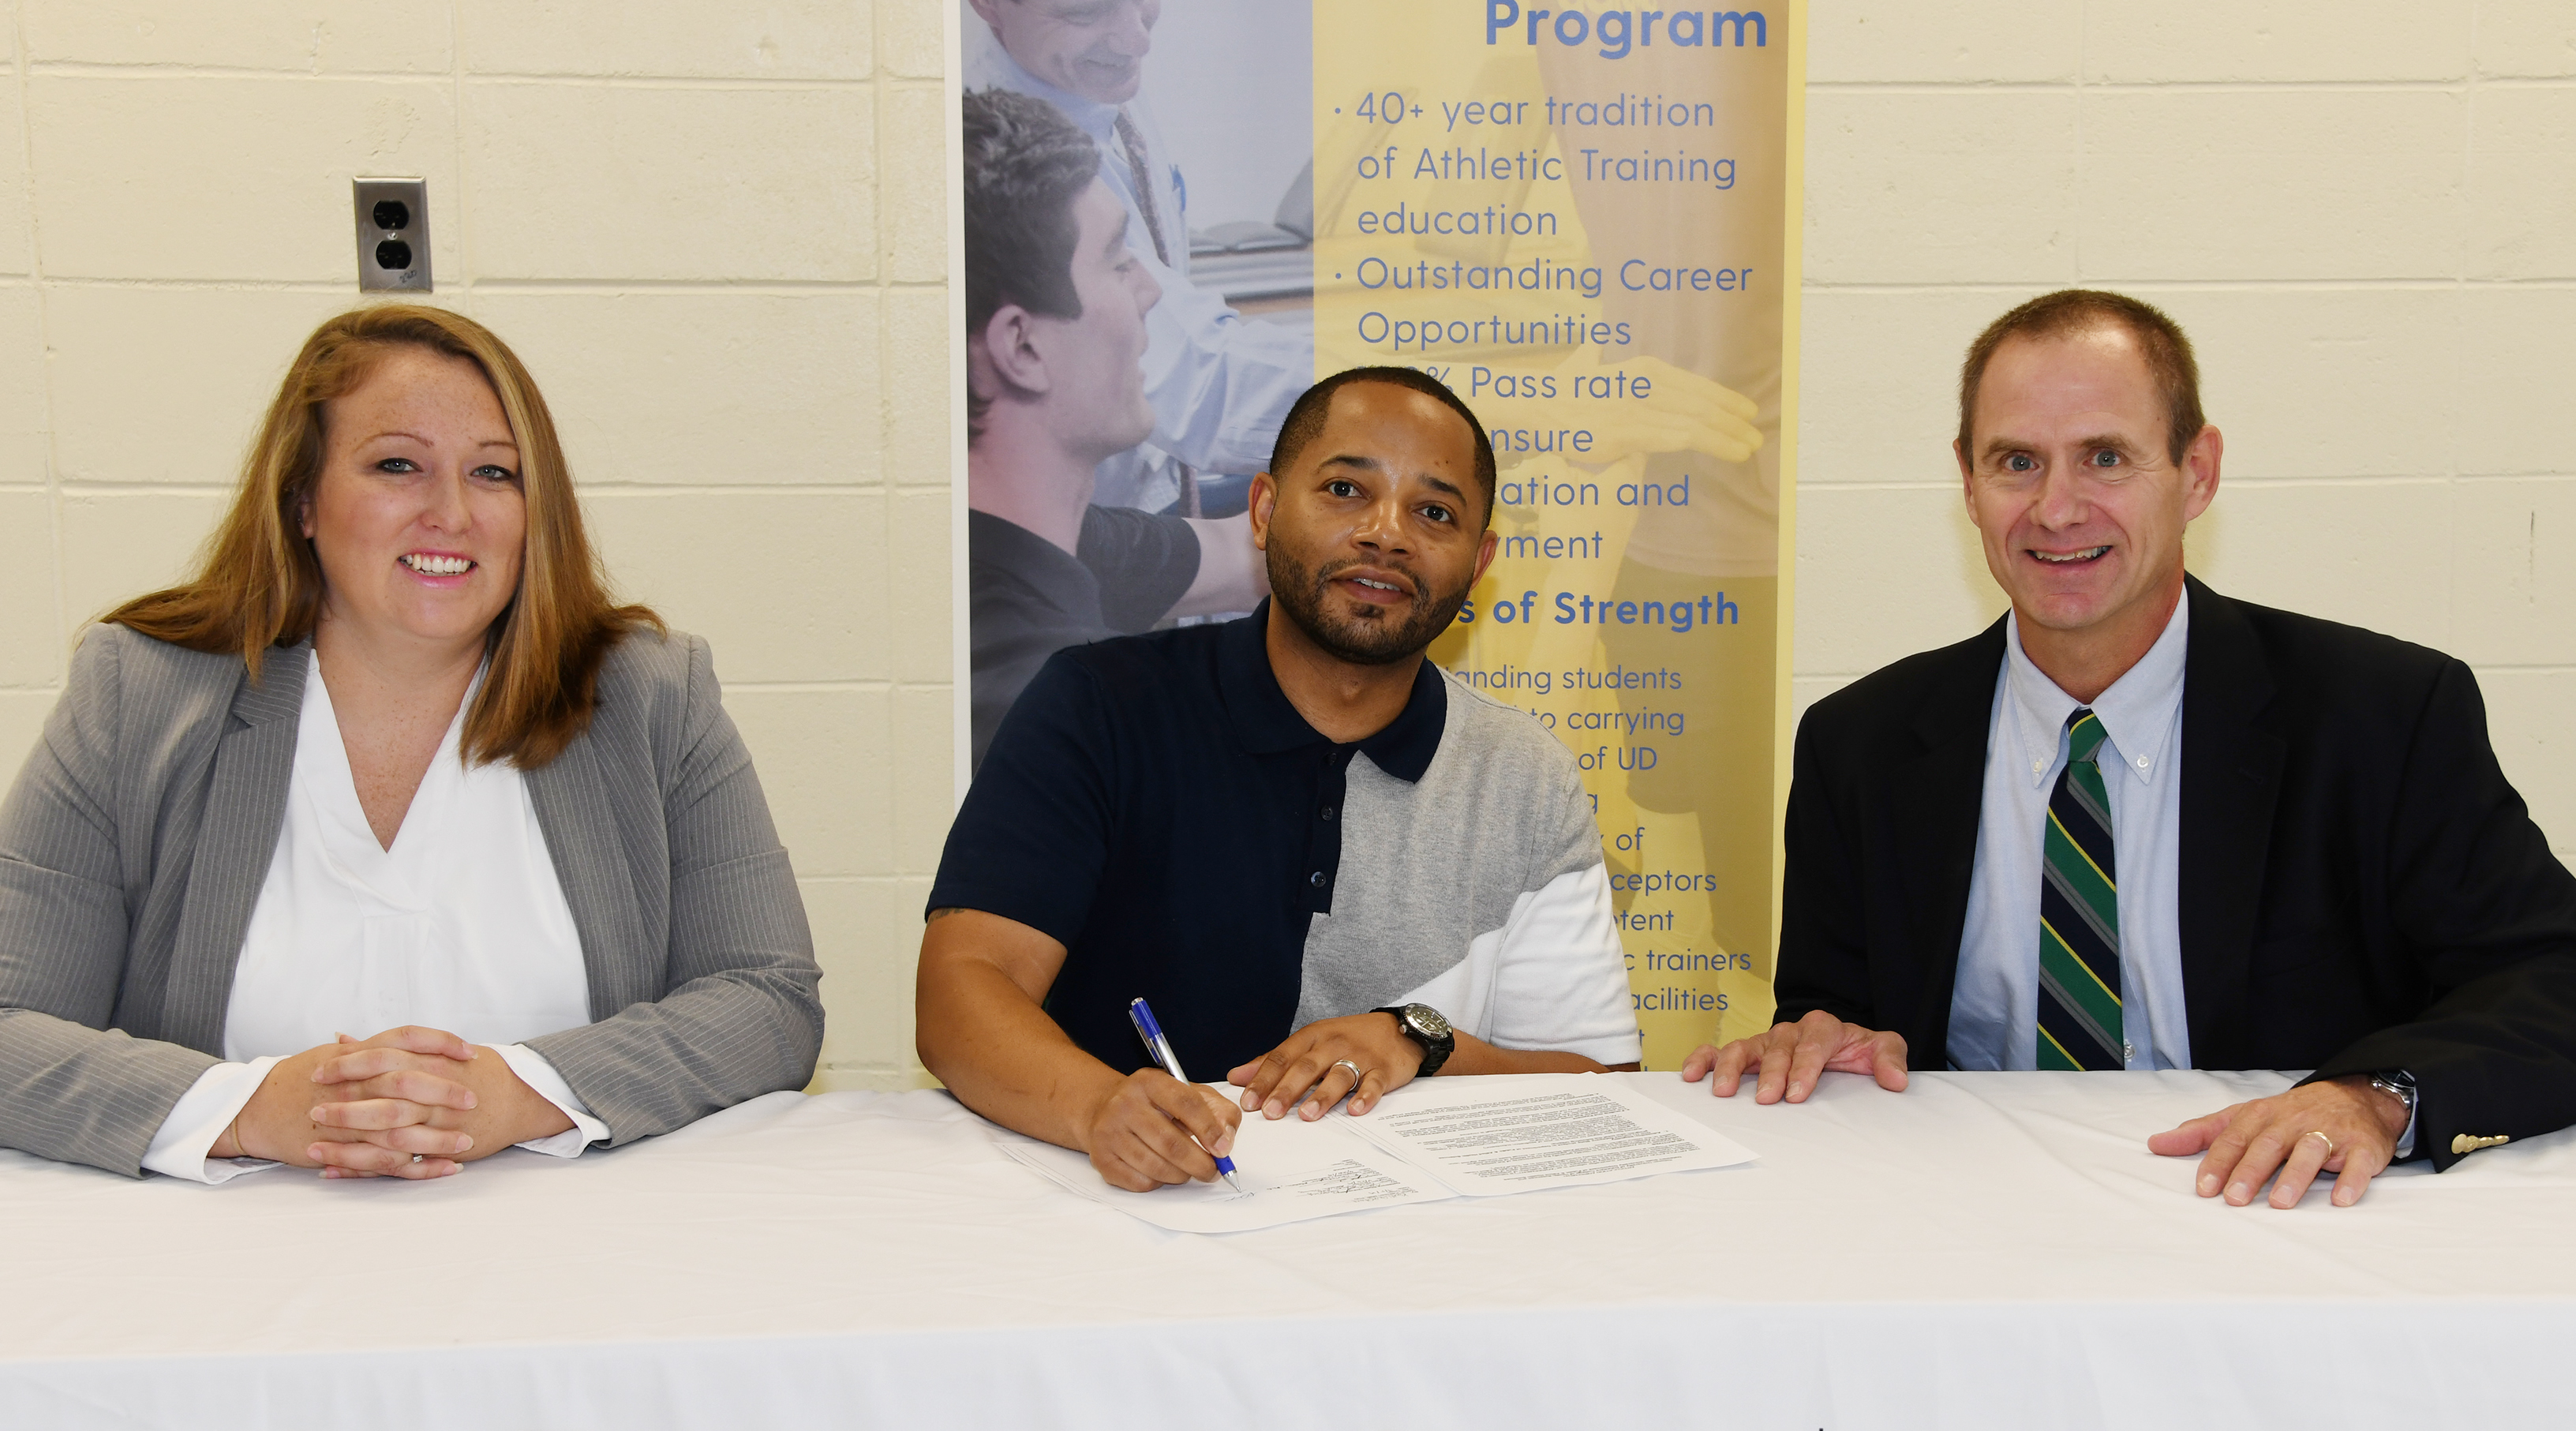 Delaware State University's Dr. Cara Gomez and Dr. R. Christopher Mason join UD's Dr. Thomas Kaminski in signing an agreement that will create a pipeline for kinesiology students to enroll in UD's Athletic Training Master's Degree Program.